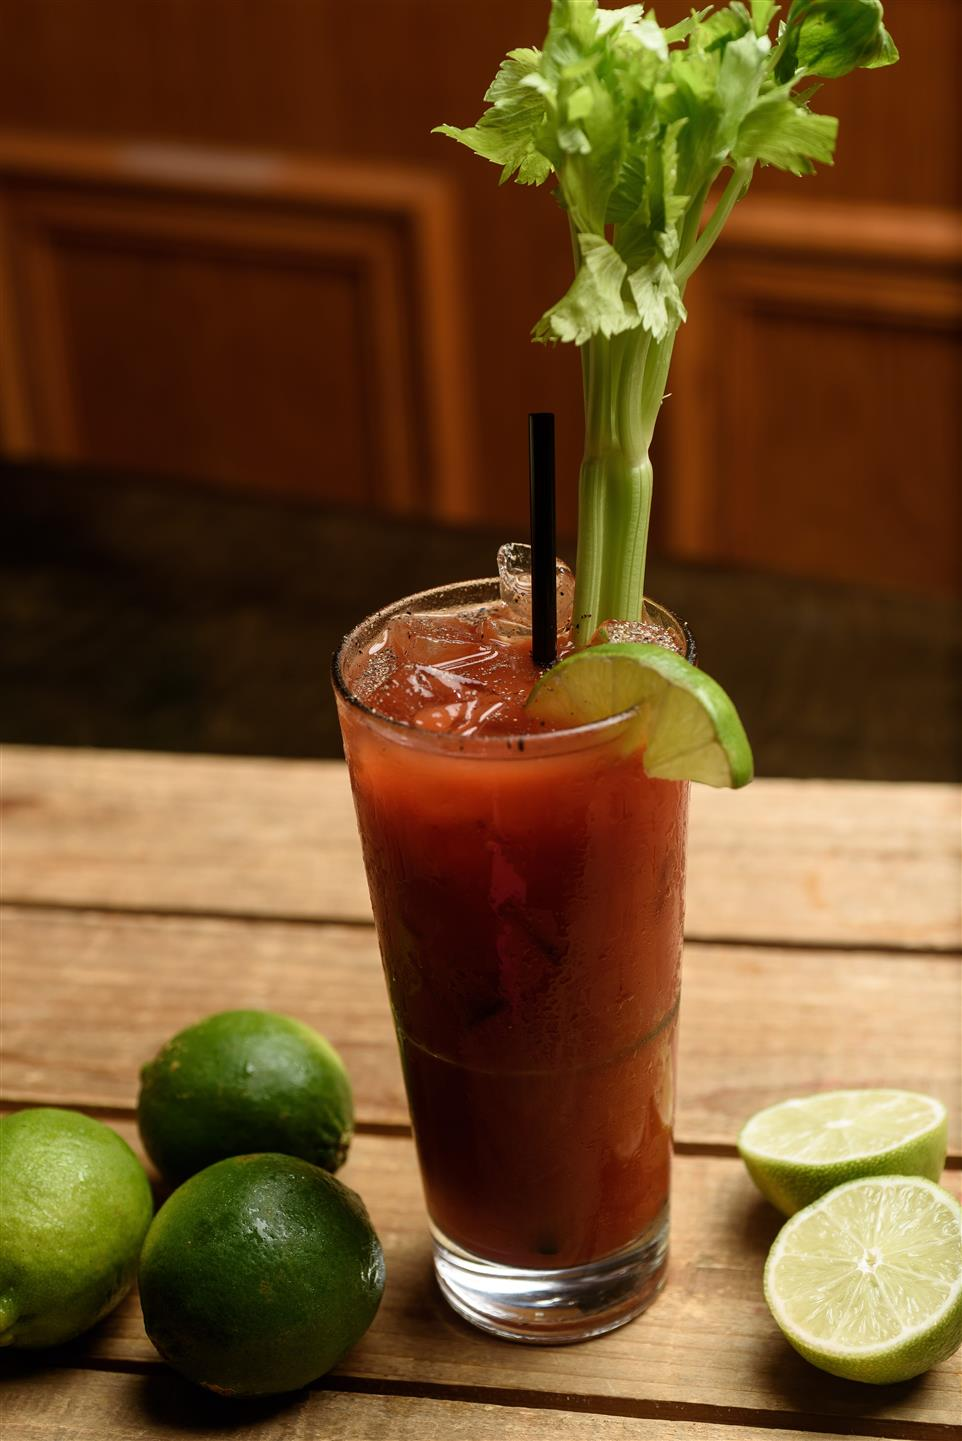 Bloody mary in glass with lime, celary, and black straw